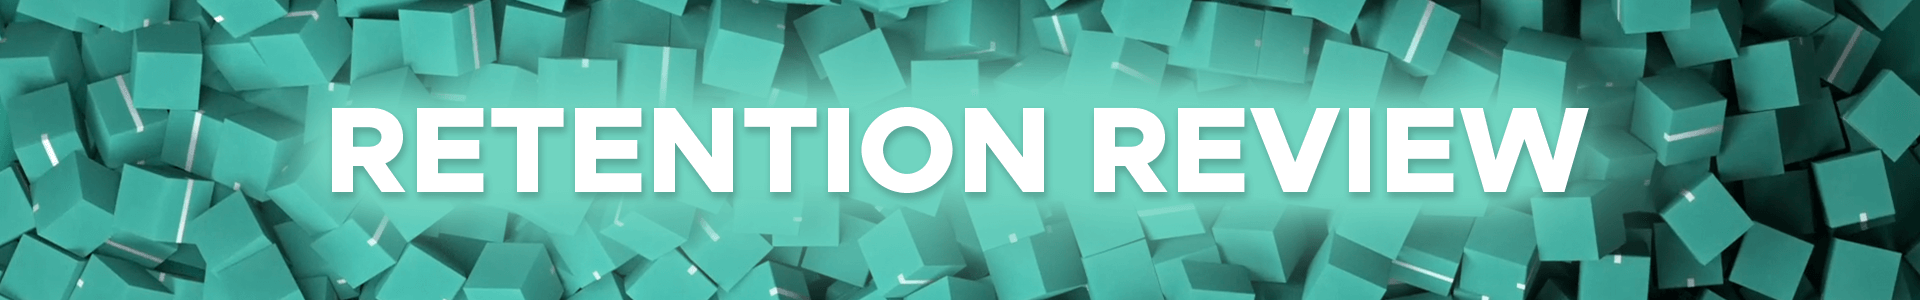 Retention-Review